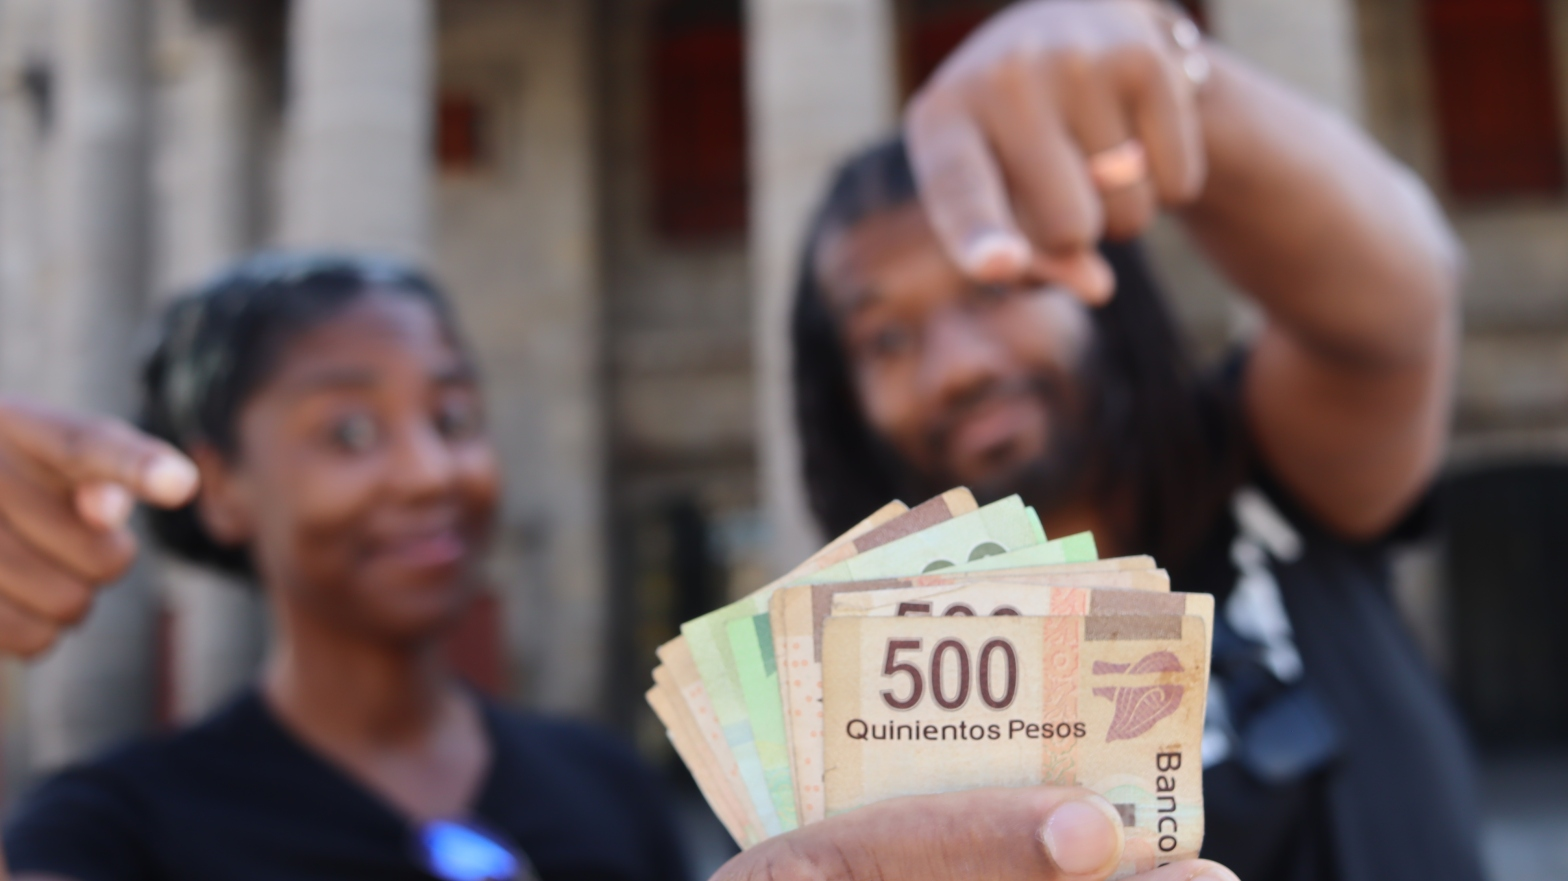 Shows couple pointing to pesos to highlight the cost of living in Guadalajara costs.